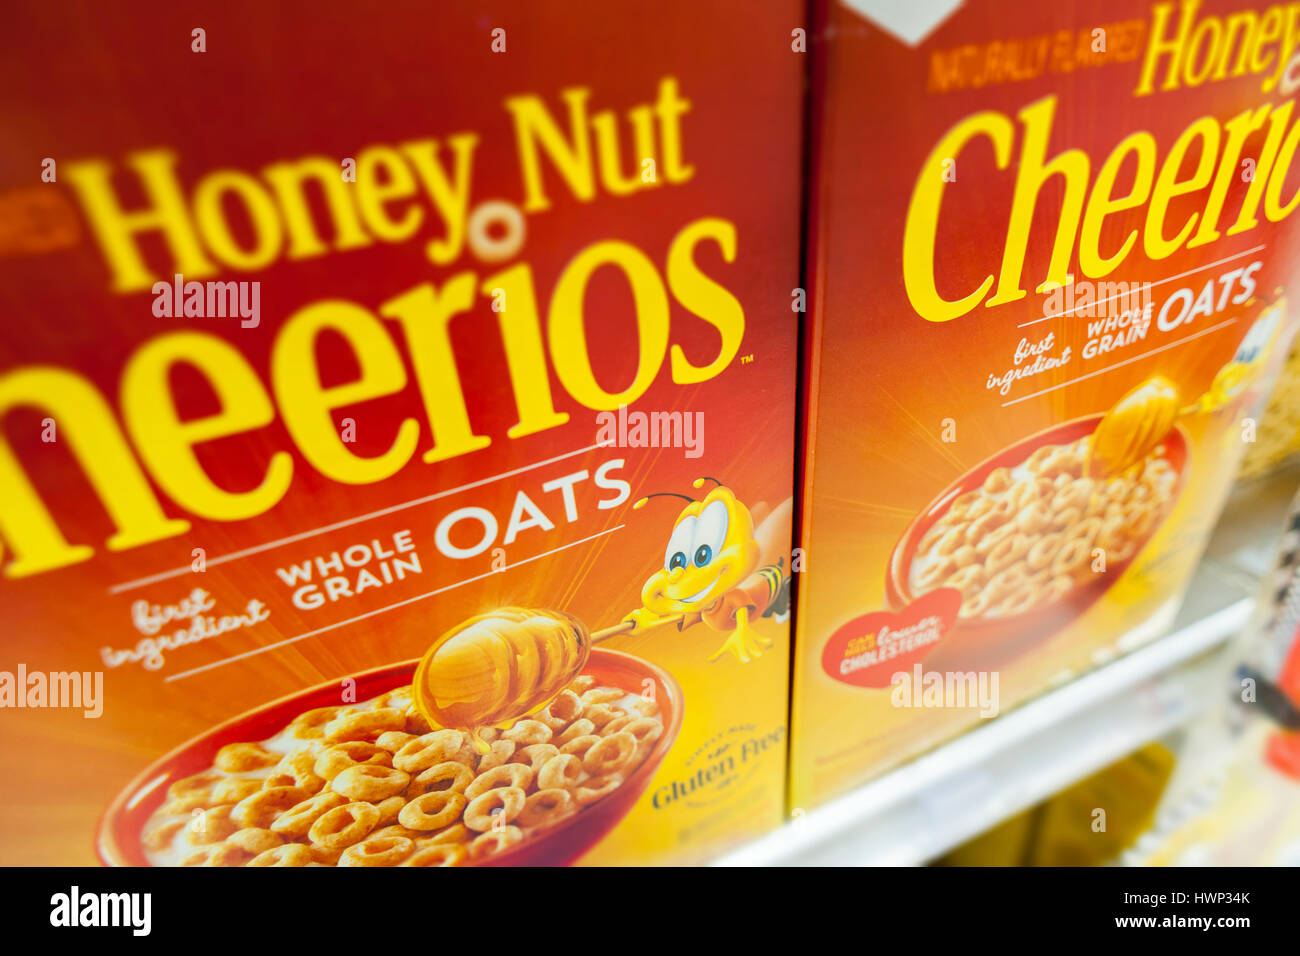 Boxes of General Mills Honey Nut Cheerios breakfast cereals featuring 'Buzz the Bee' in a supermarket in - Stock Image